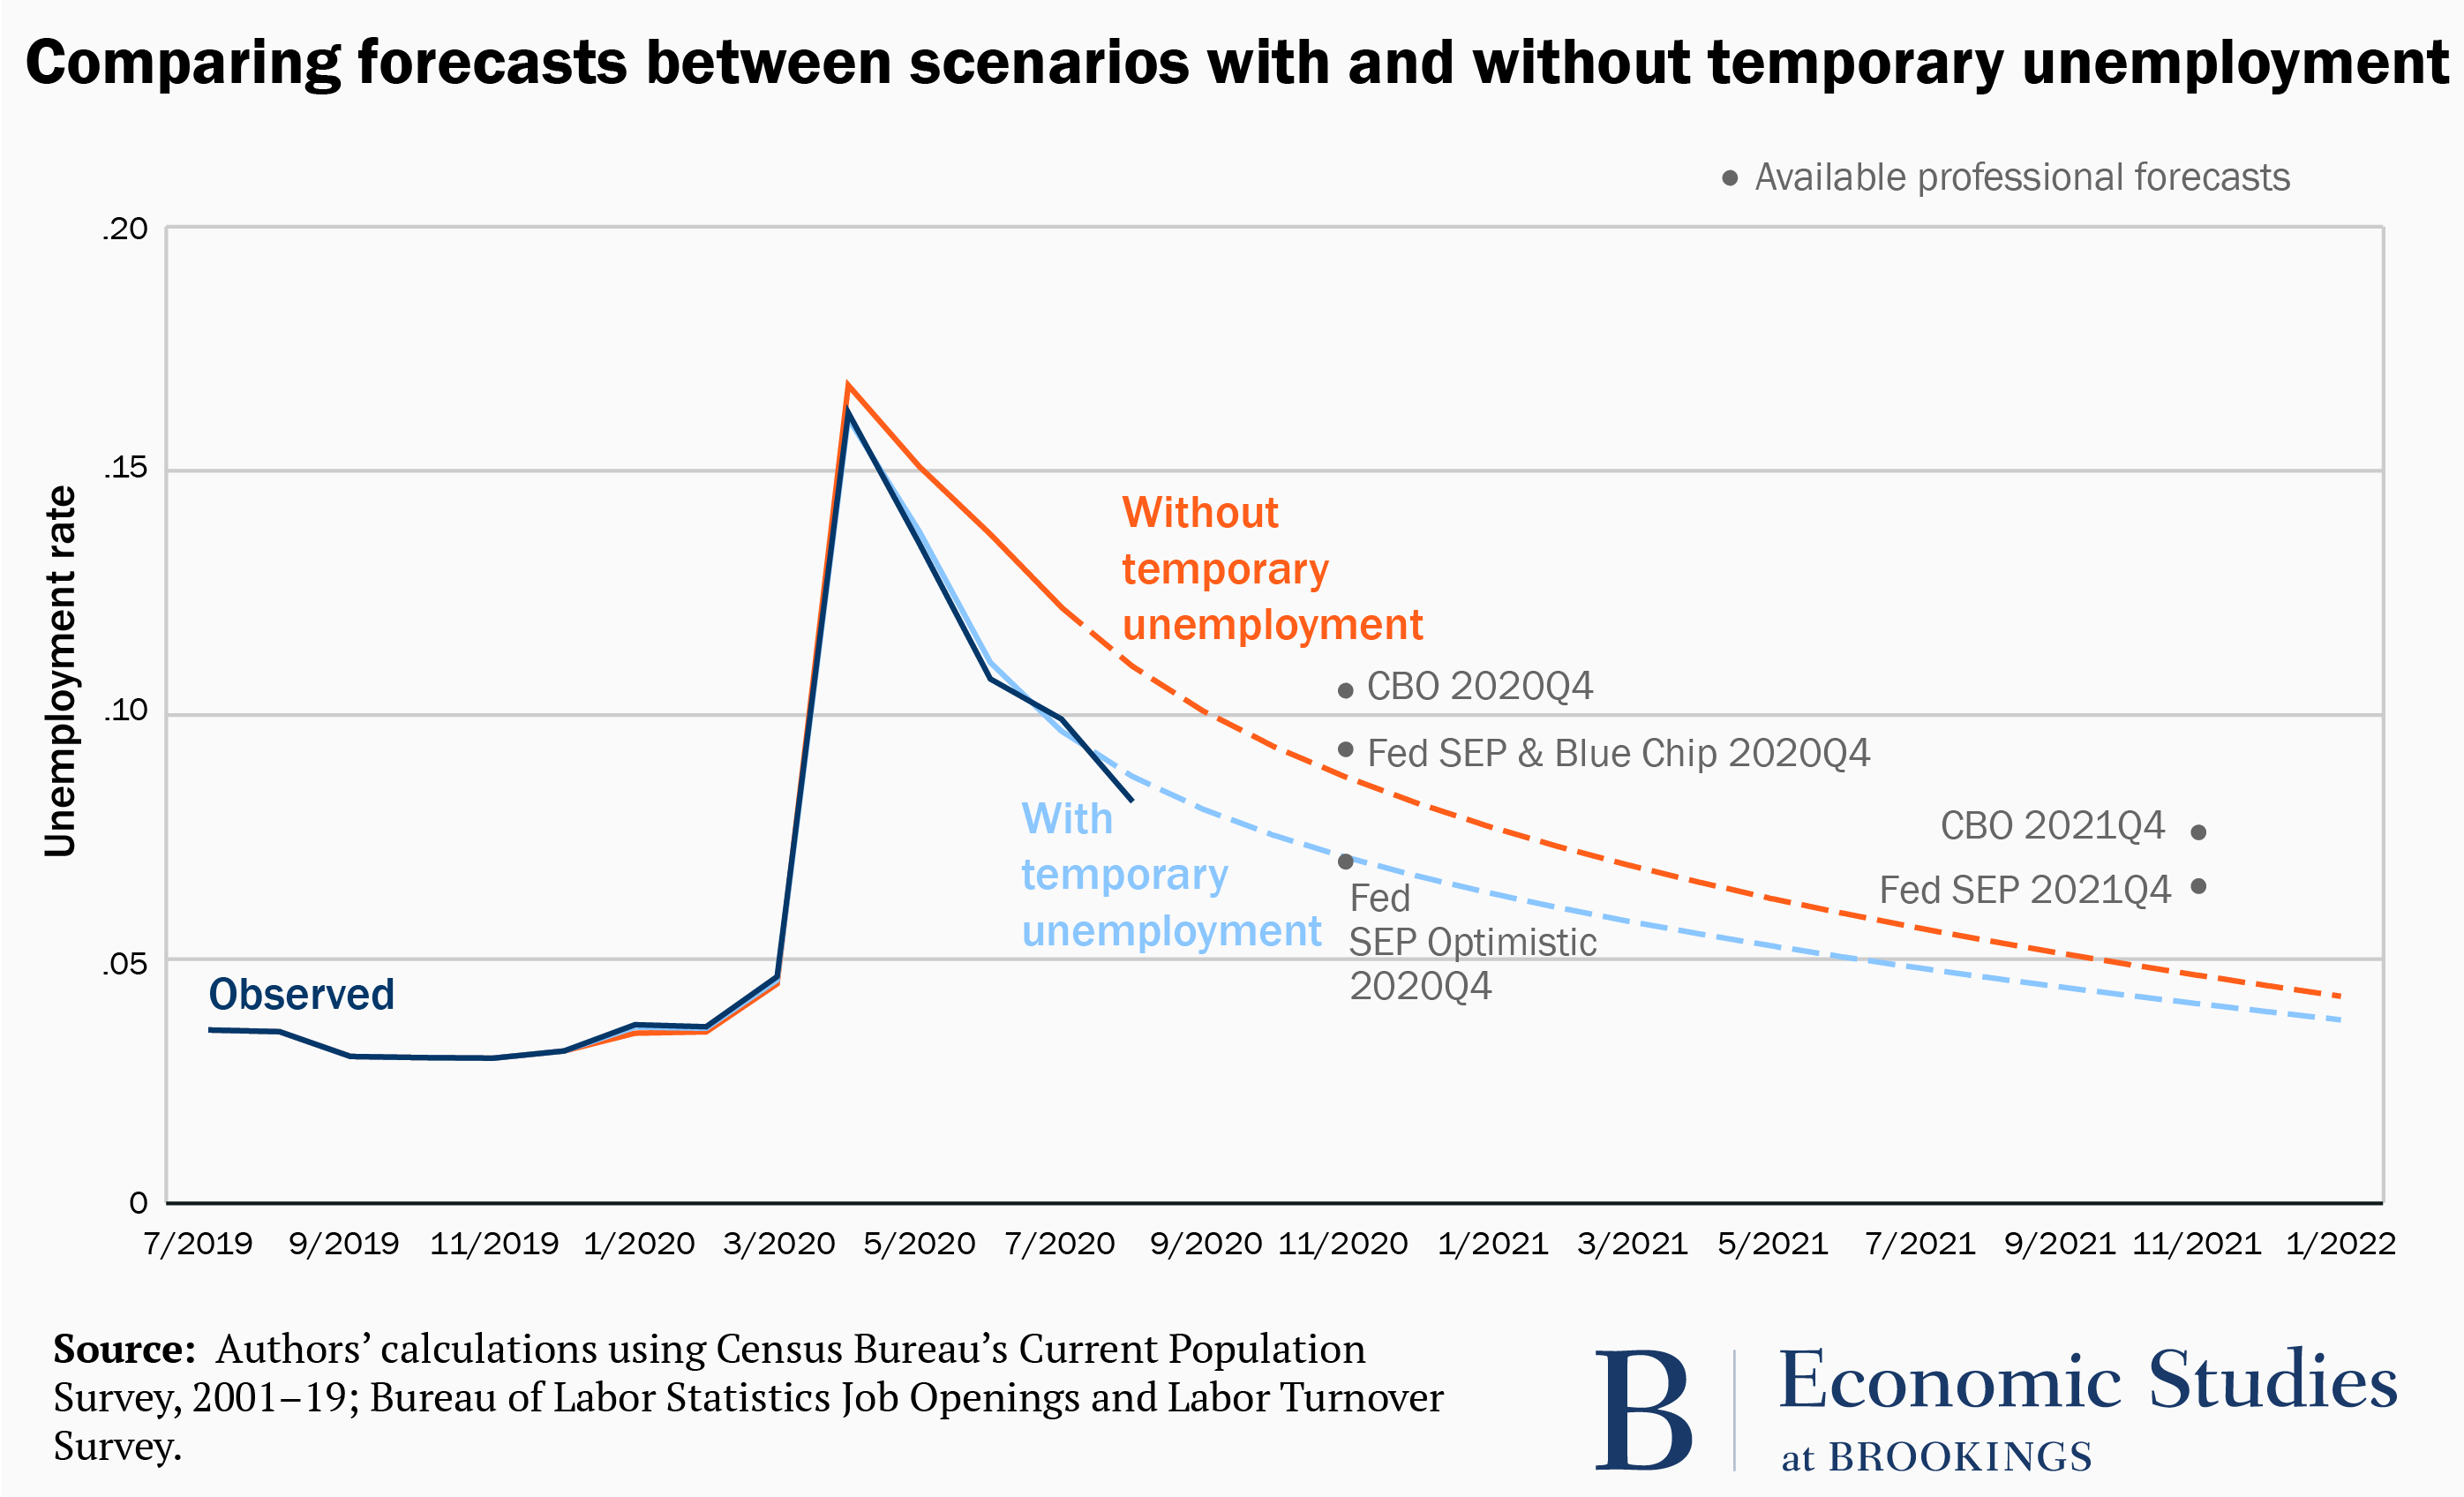 Comparing forecasts between scenarios with and without temporary unemployment